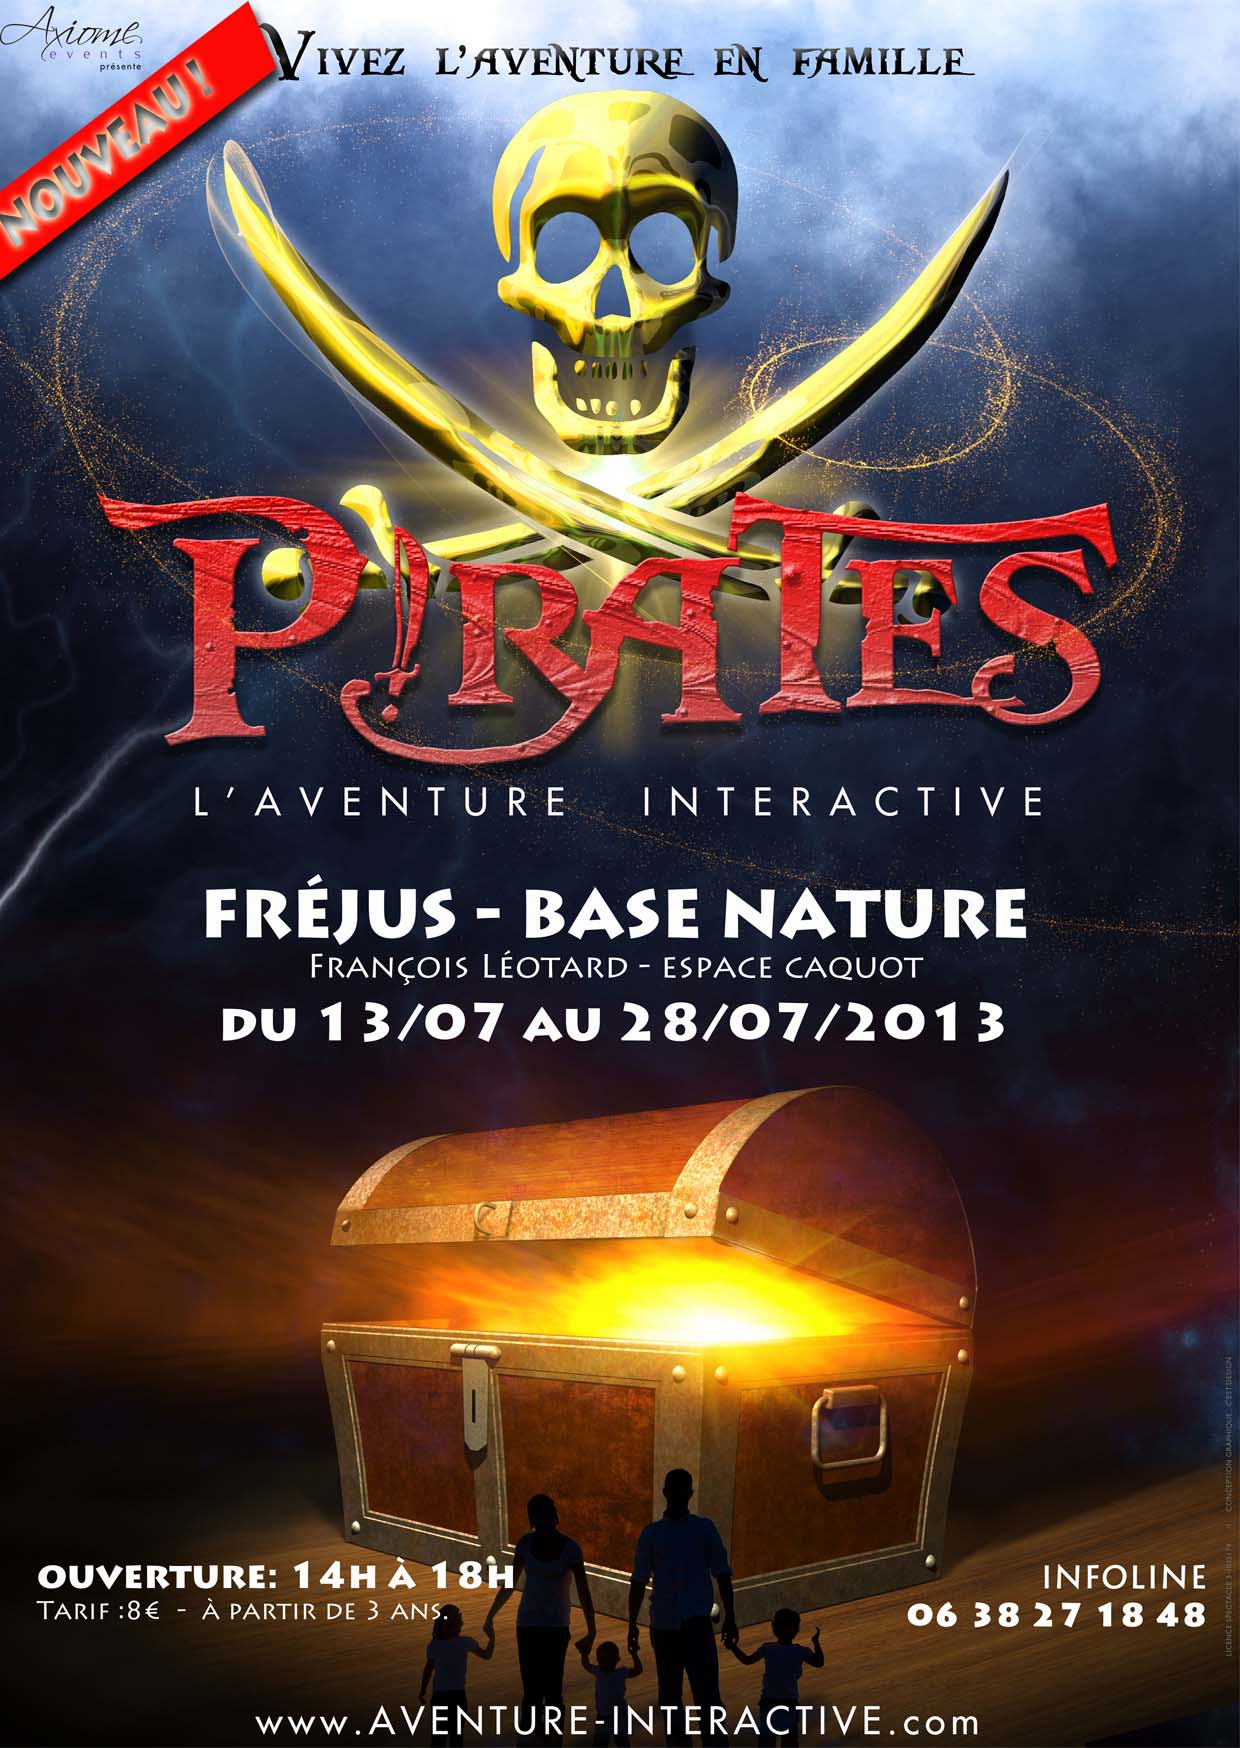 PIRATES, L'AVENTURE INTERACTIVE FRÉJUS